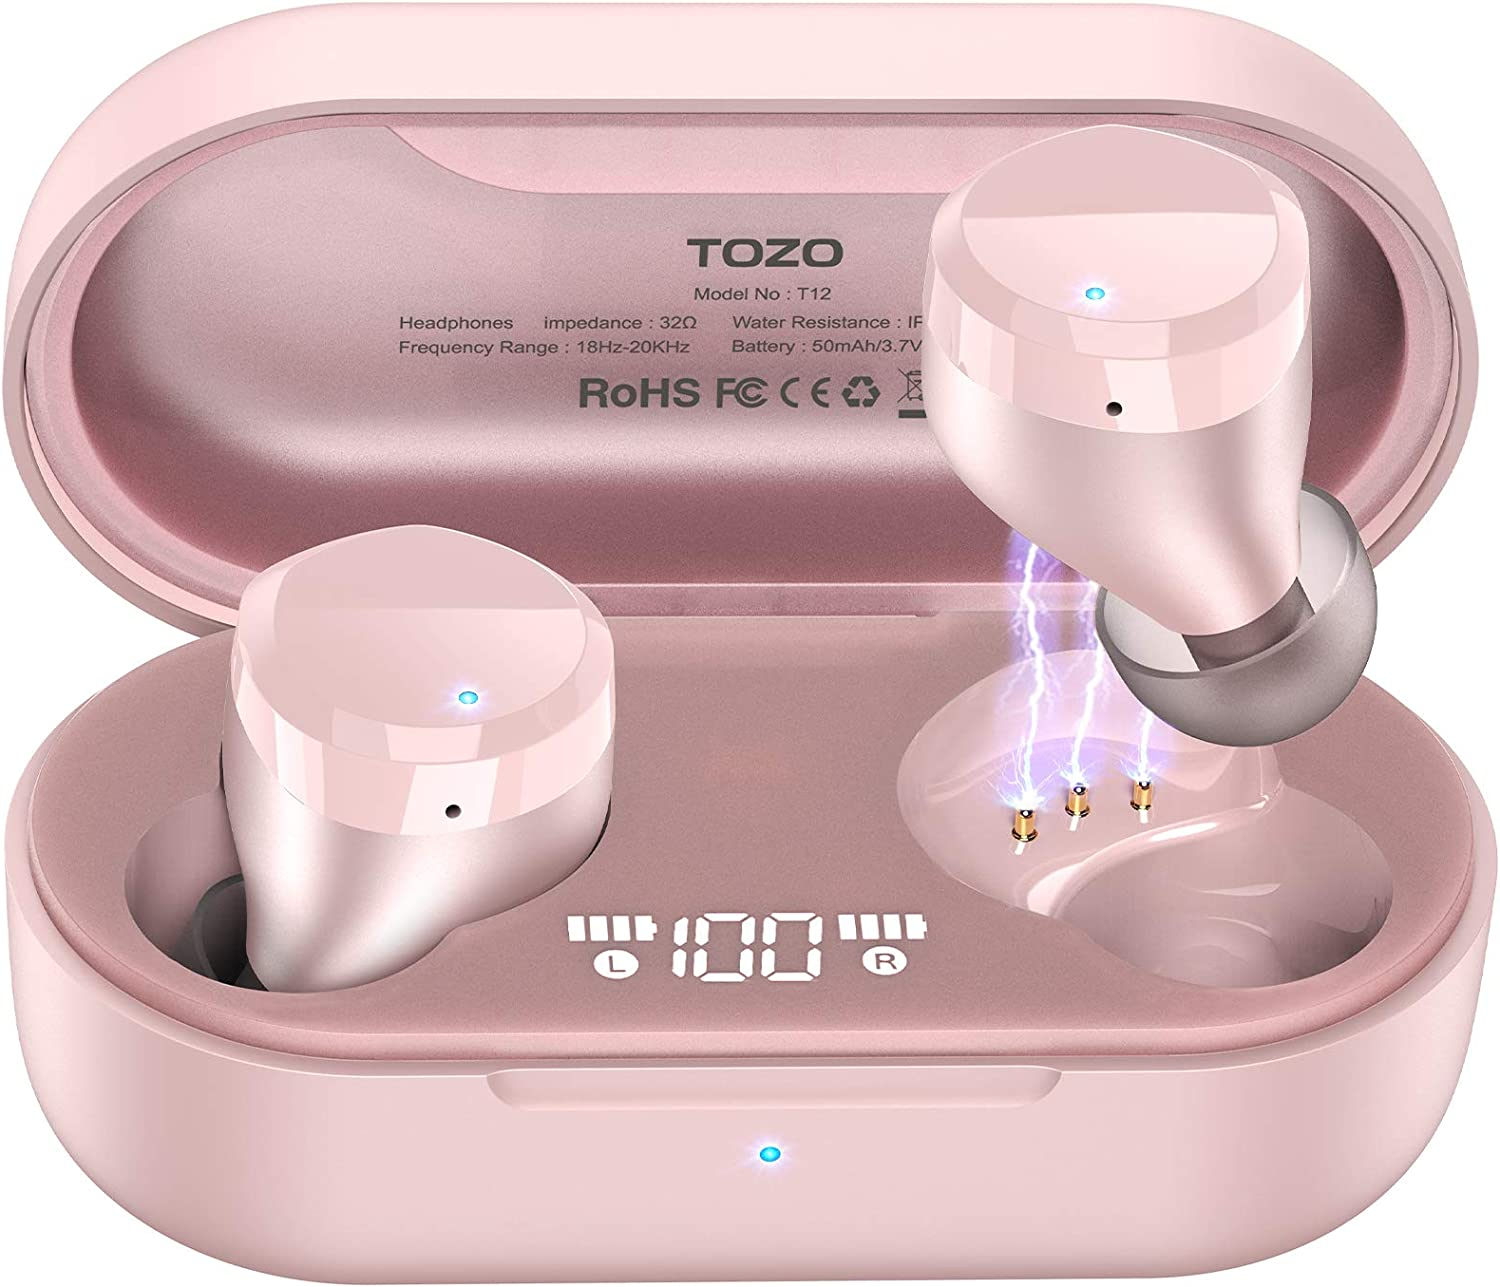 TOZO T12 Wireless Earbuds Bluetooth Headphones Premium Fidelity Sound Quality Wireless Charging Case Digital LED Intelligence Display IPX8 Waterproof Earphones Built-in Mic Headset for Sport Rose Gold